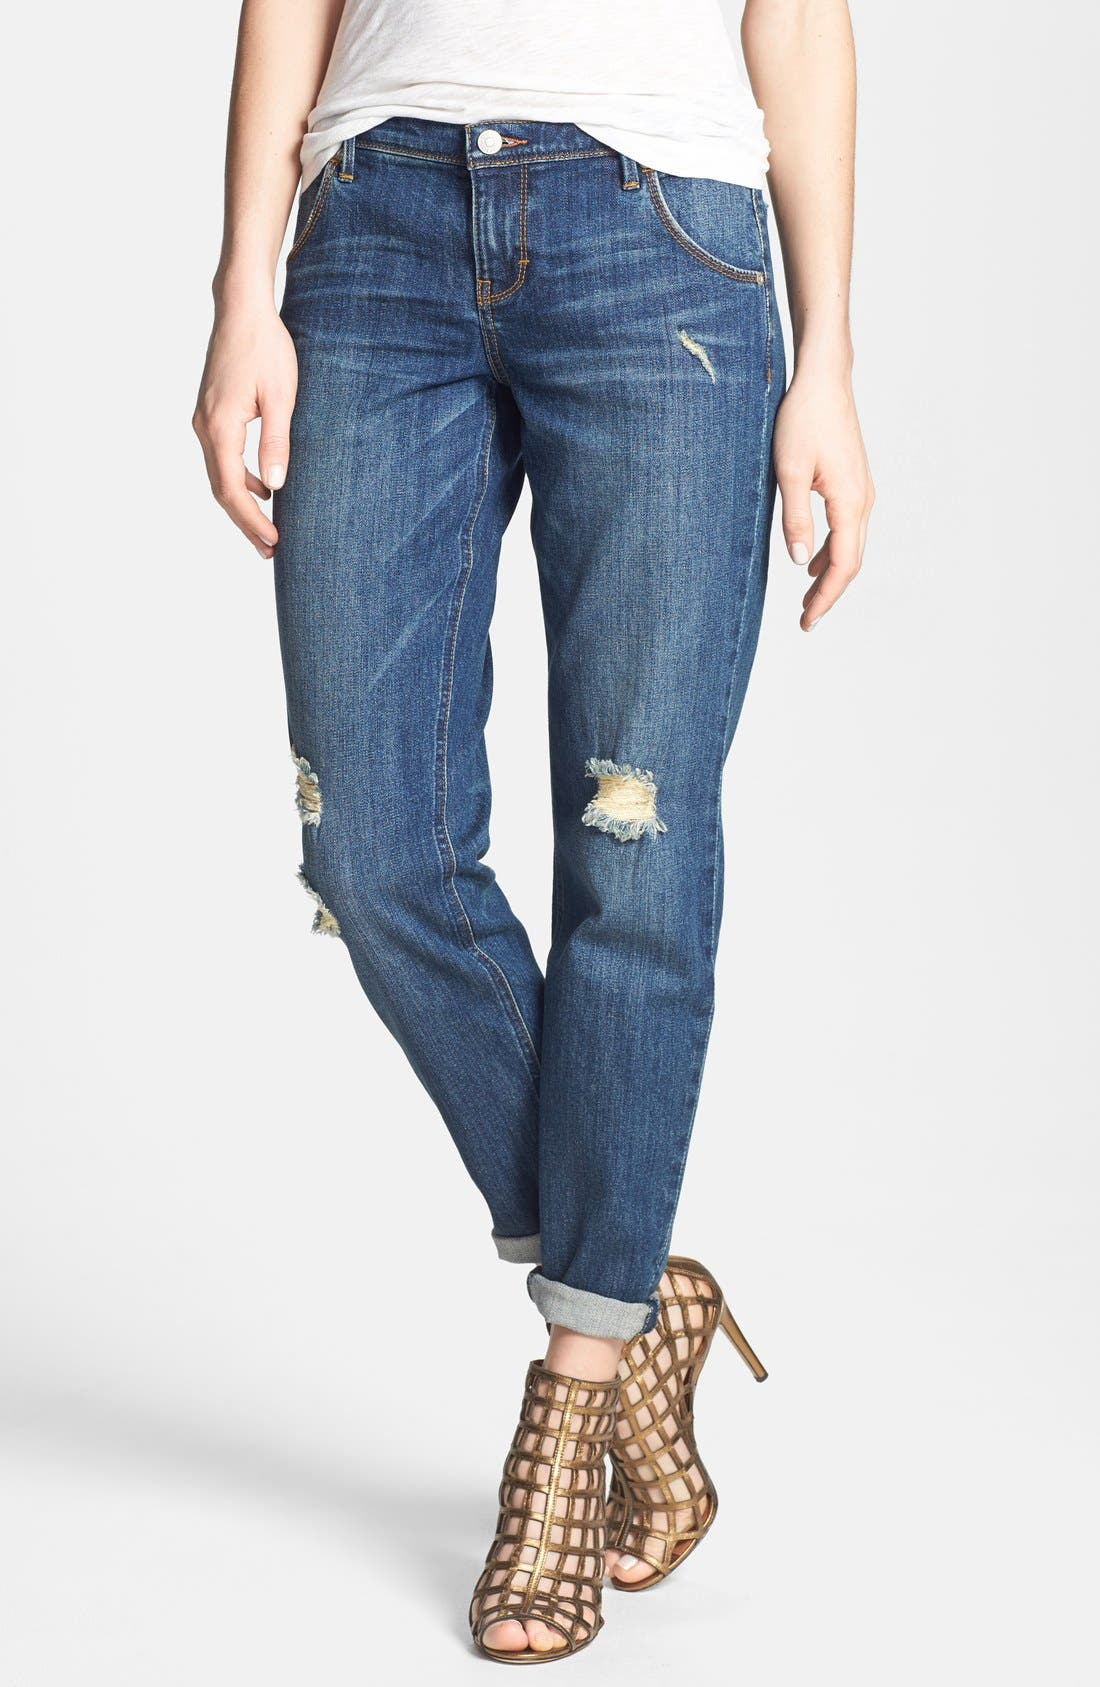 Main Image - Dittos 'Charlie' Destroyed Boyfriend Jeans (Lady Foot)